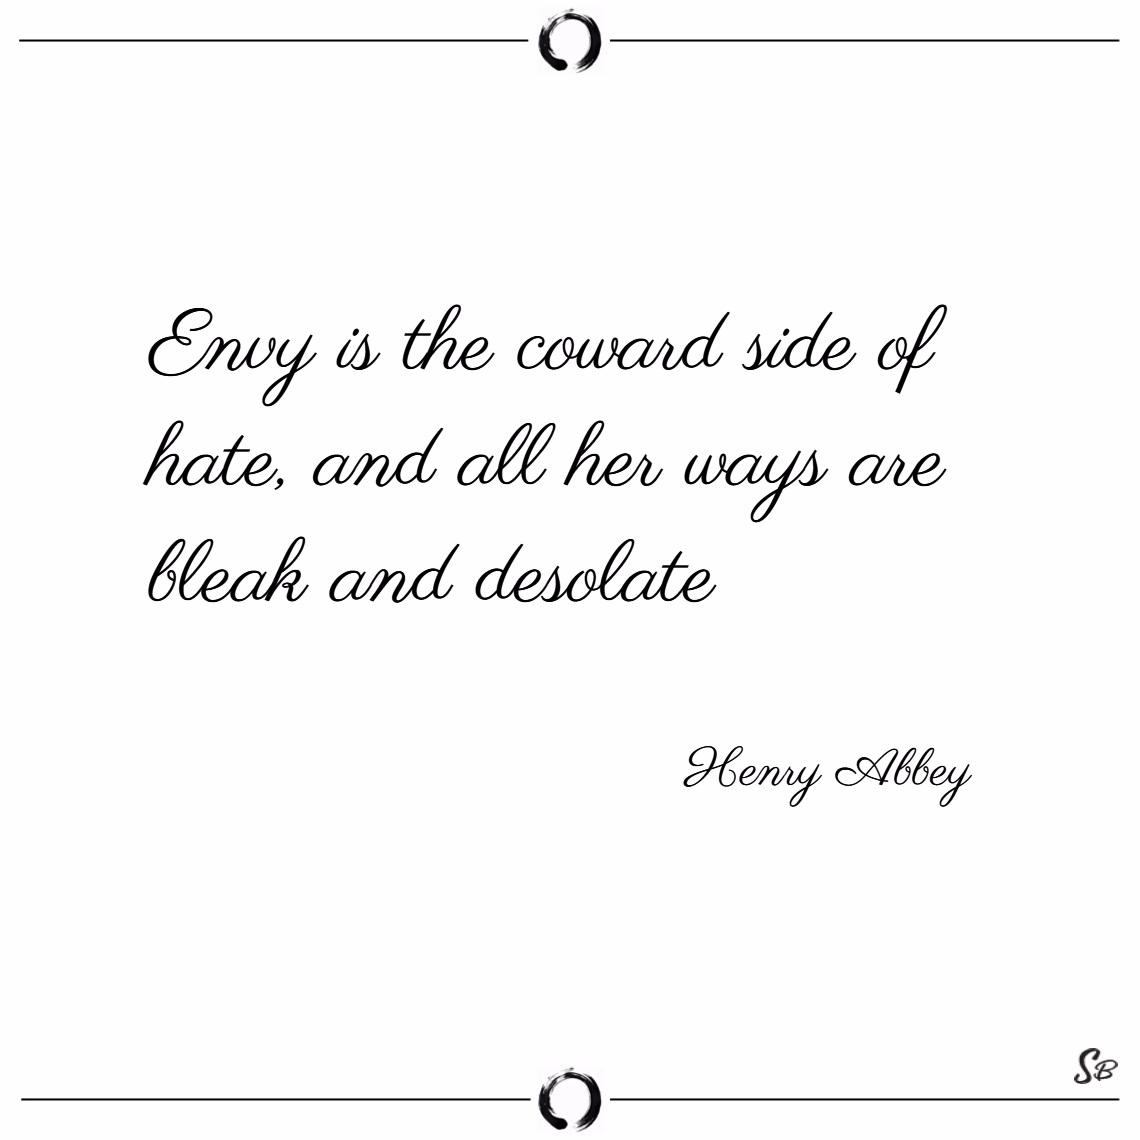 Envy is the coward side of hate, and all her ways are bleak and desolate. – henry abbey